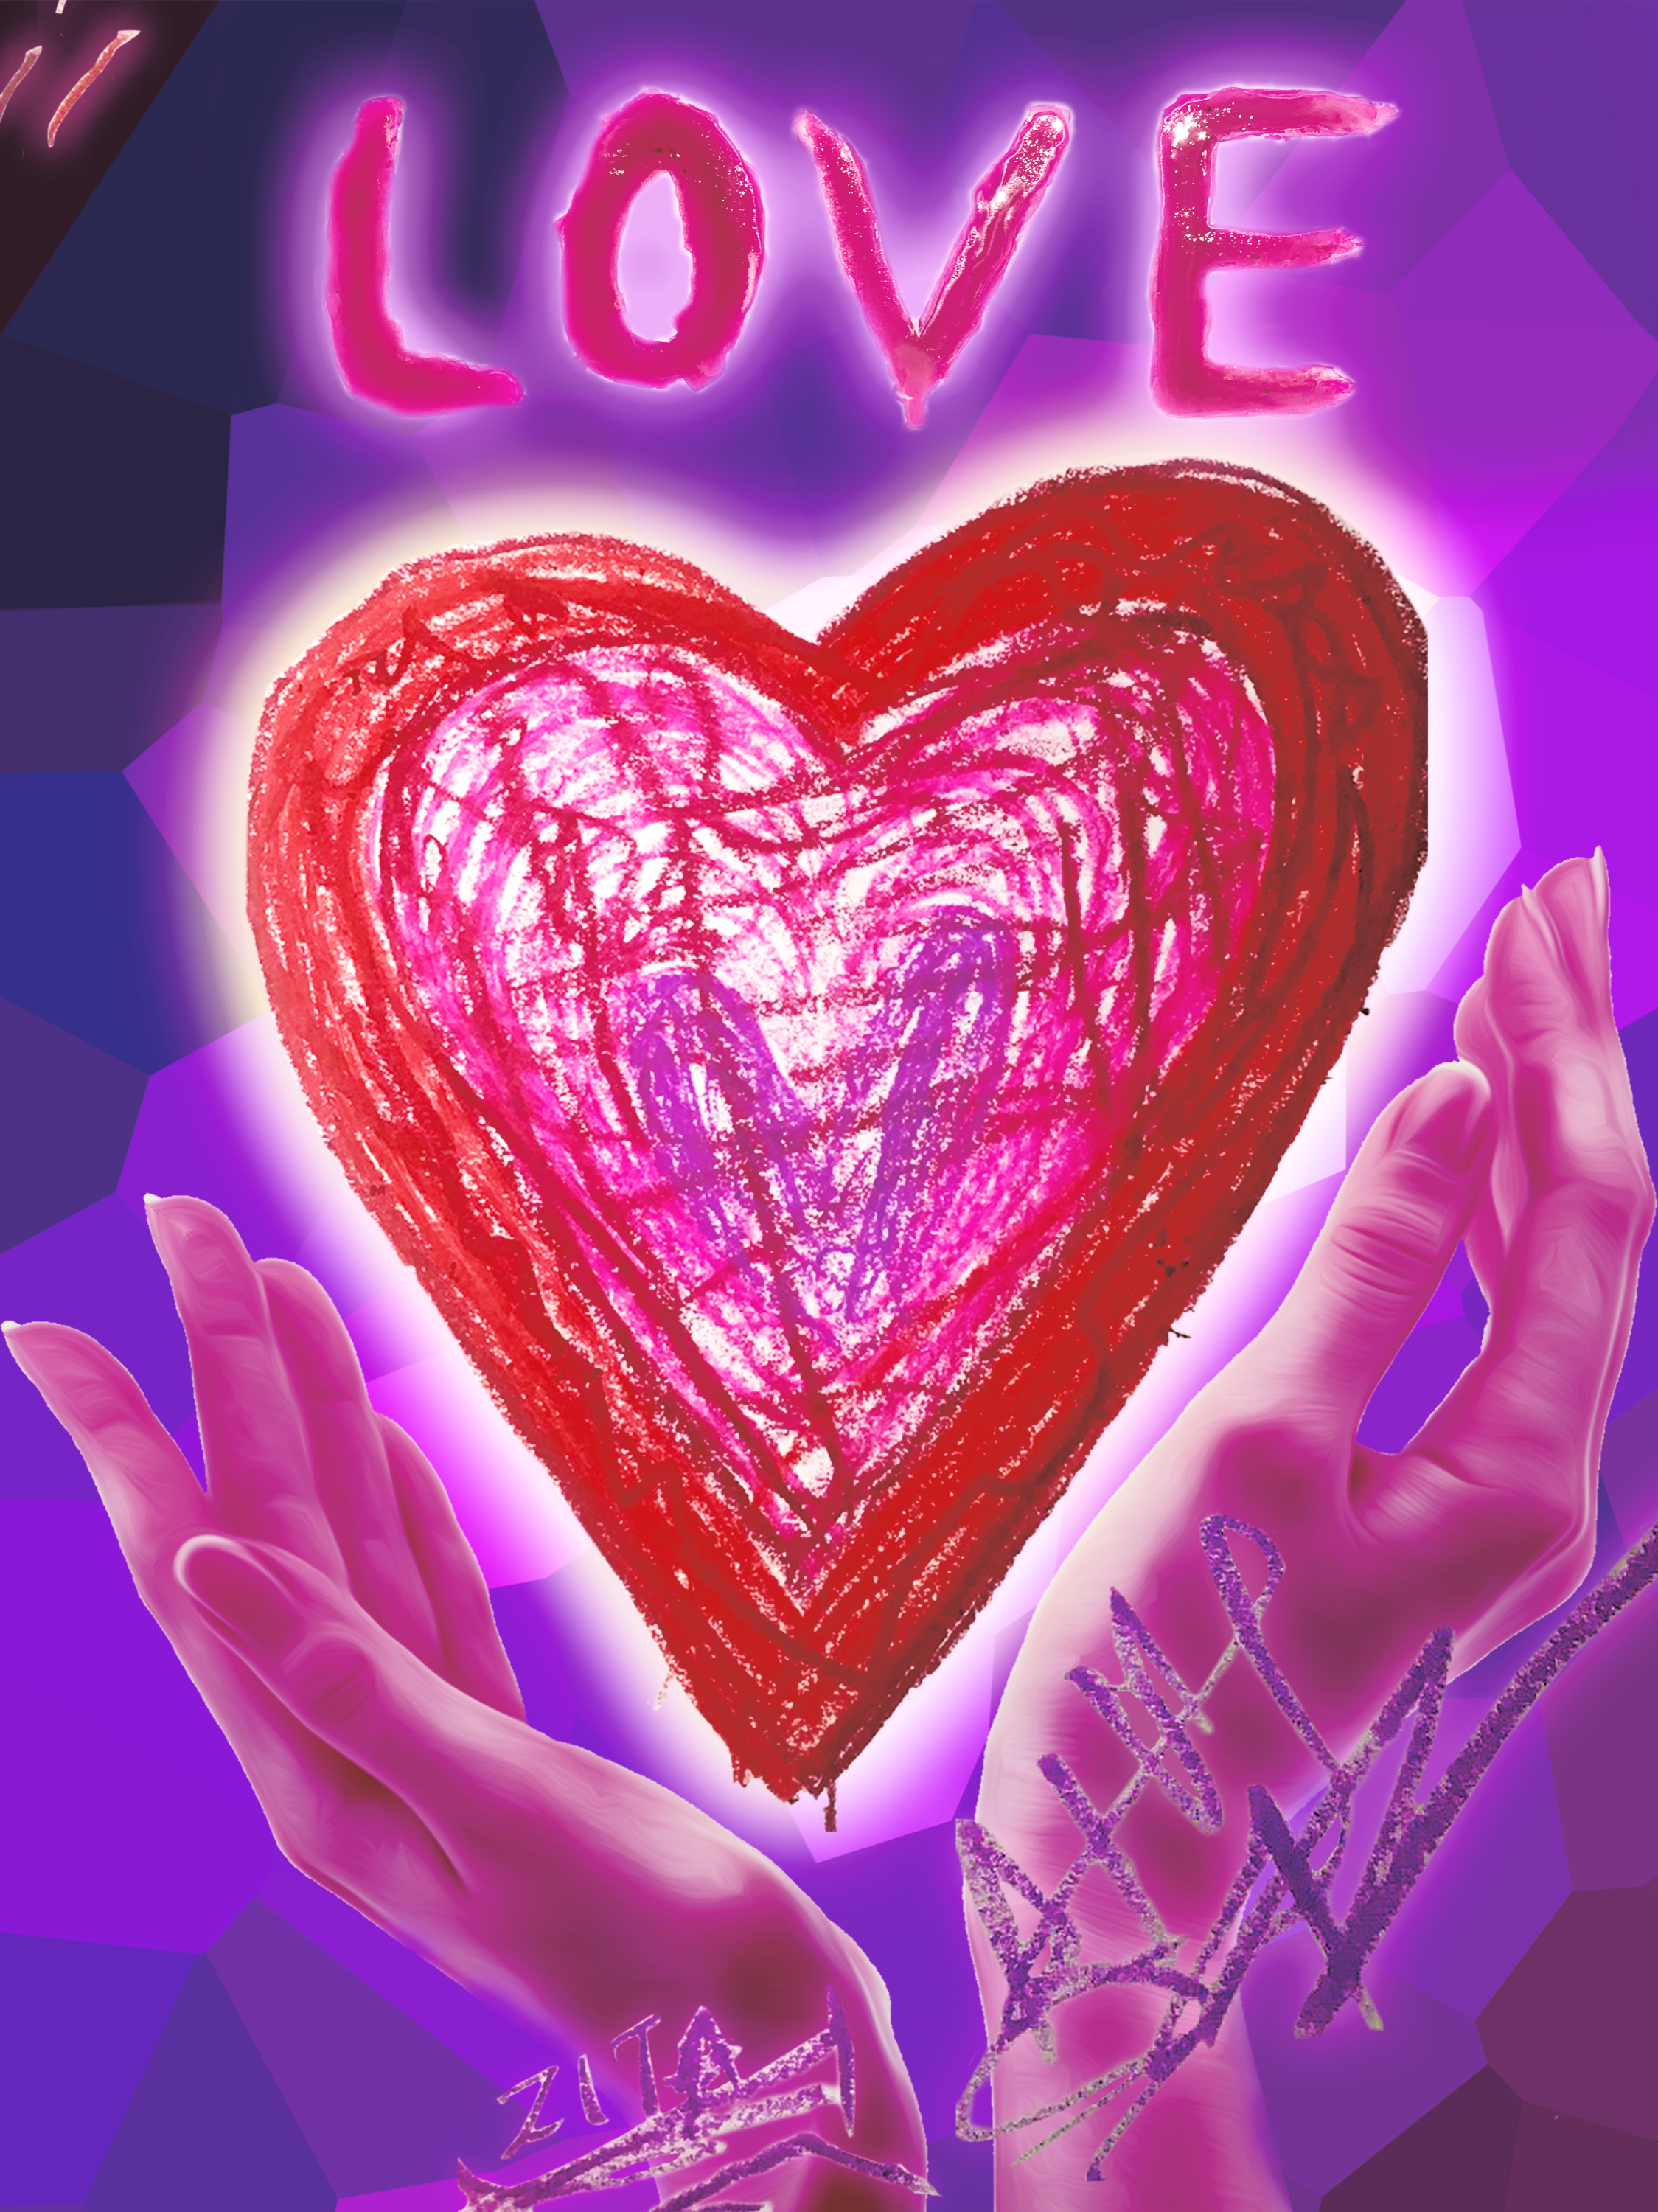 LOVE_edited.png